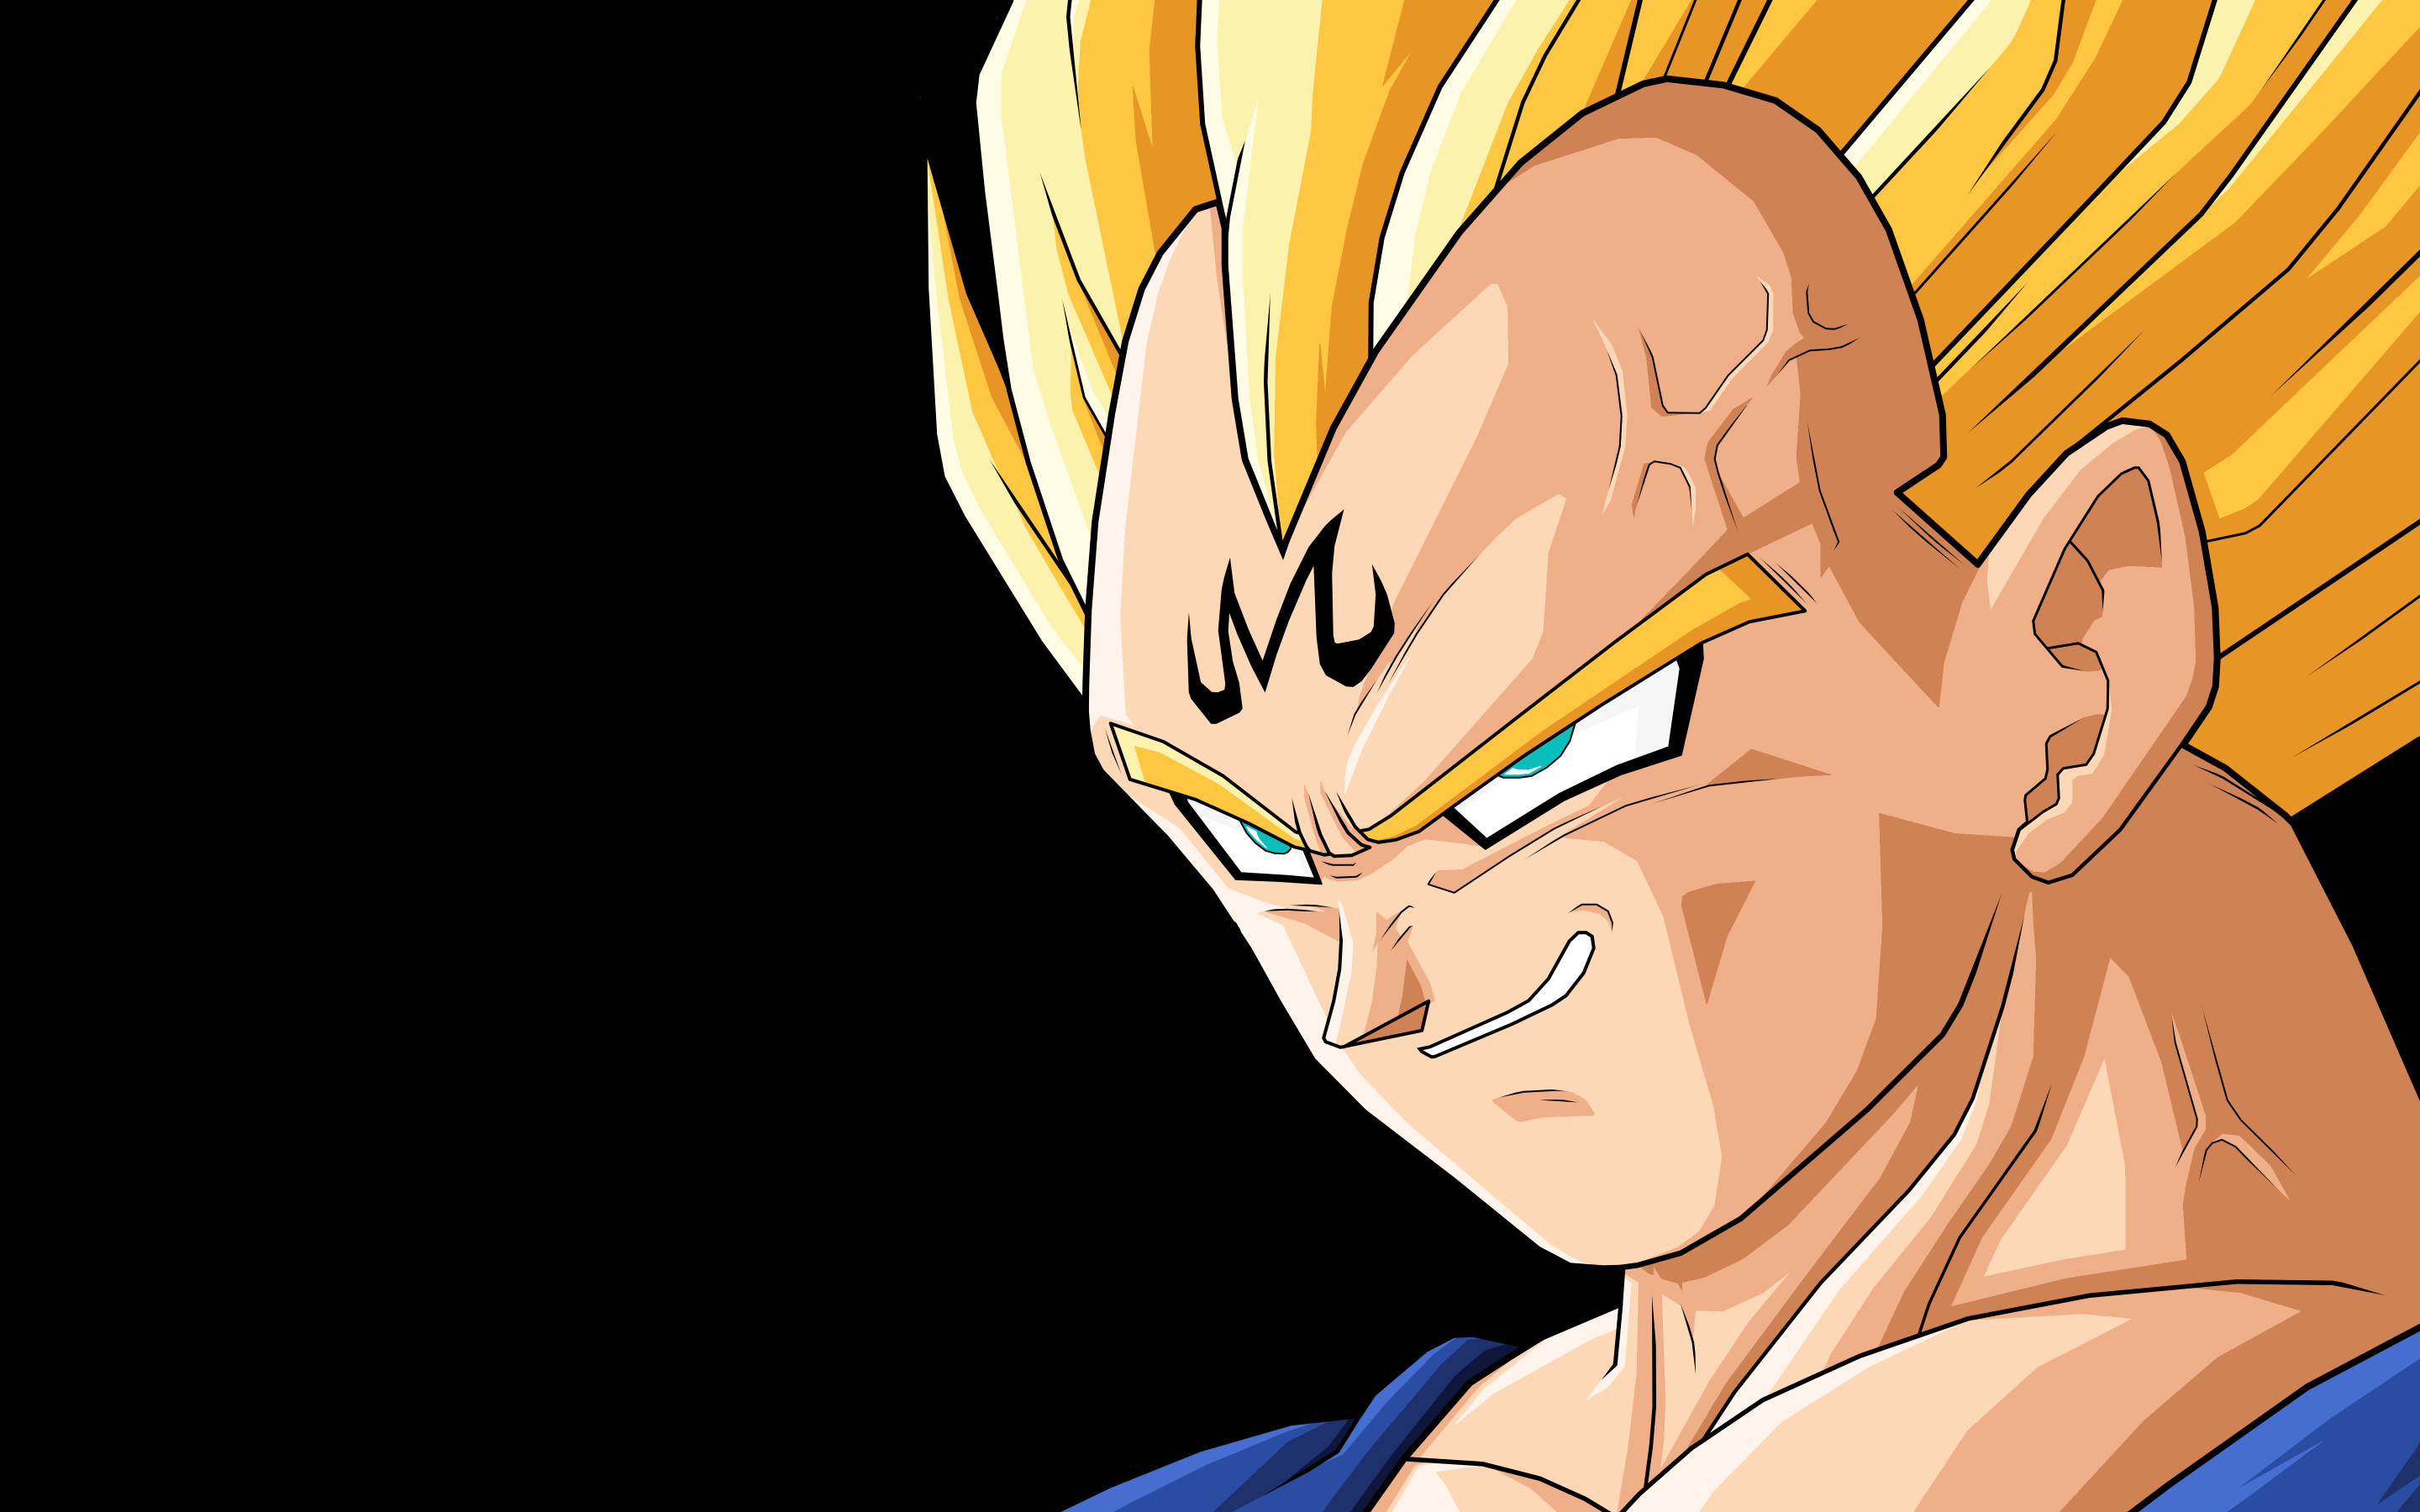 Vegeta hd wallpapers 69 images - Vegeta wallpapers for mobile ...